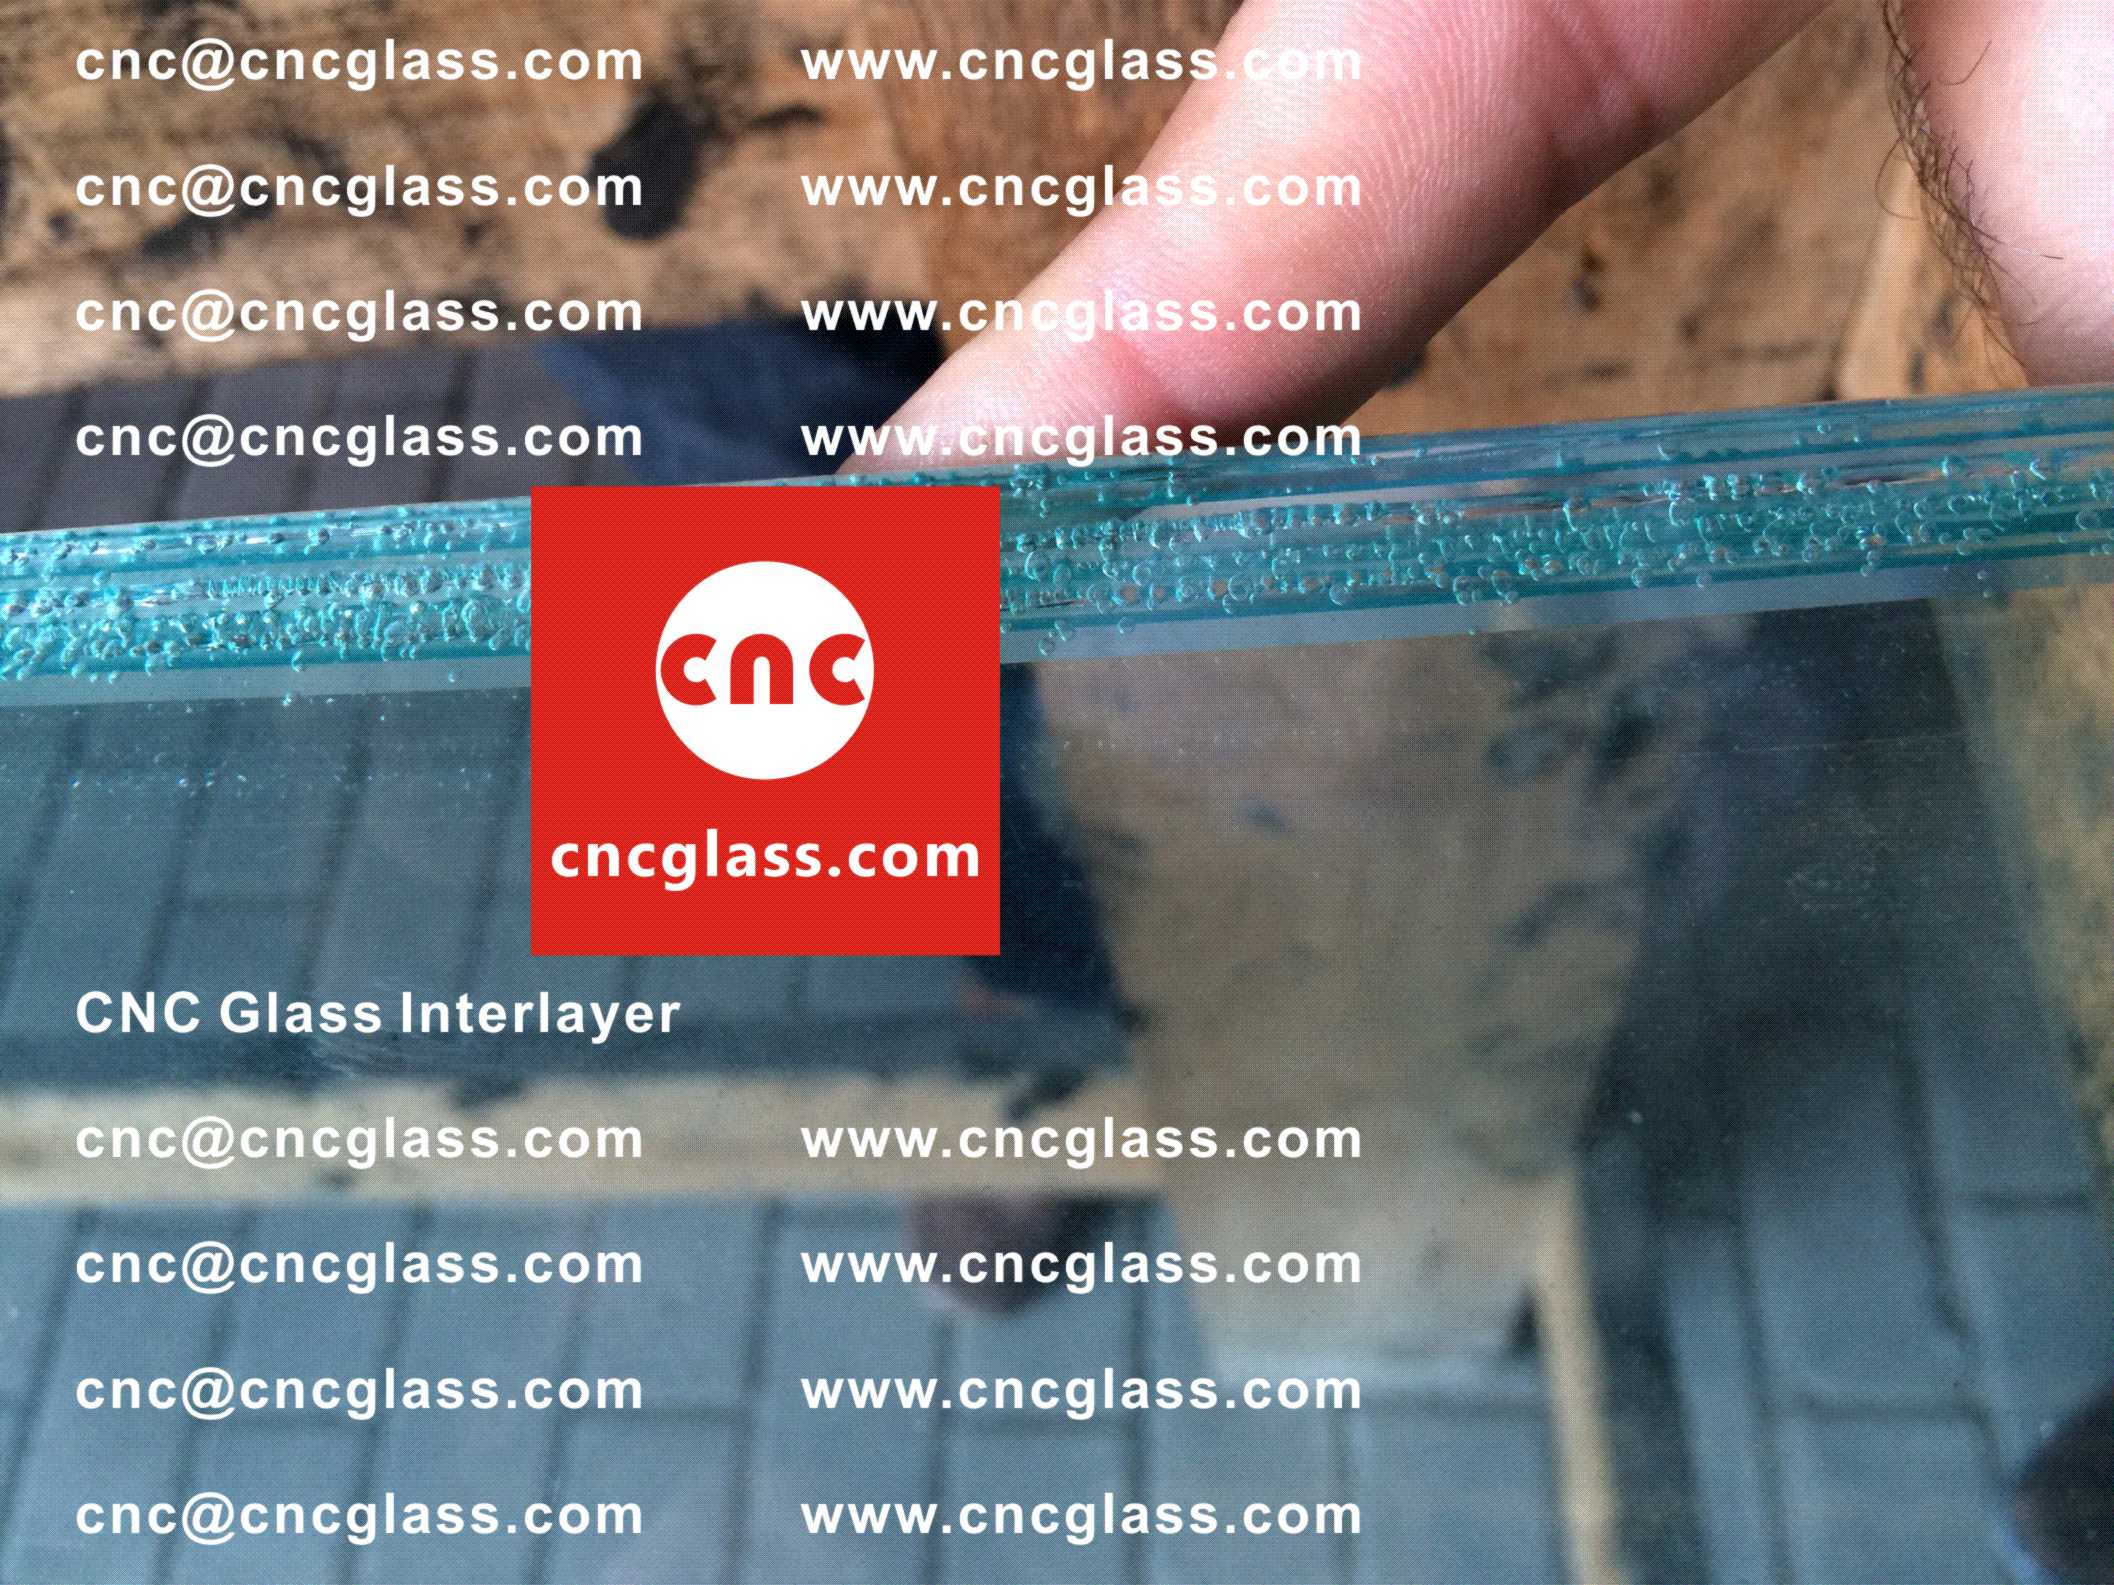 Too High Temperature Causing Bubbles in EVA Film Safety Laminated Glass Glazing (Practical Case Study) (2)